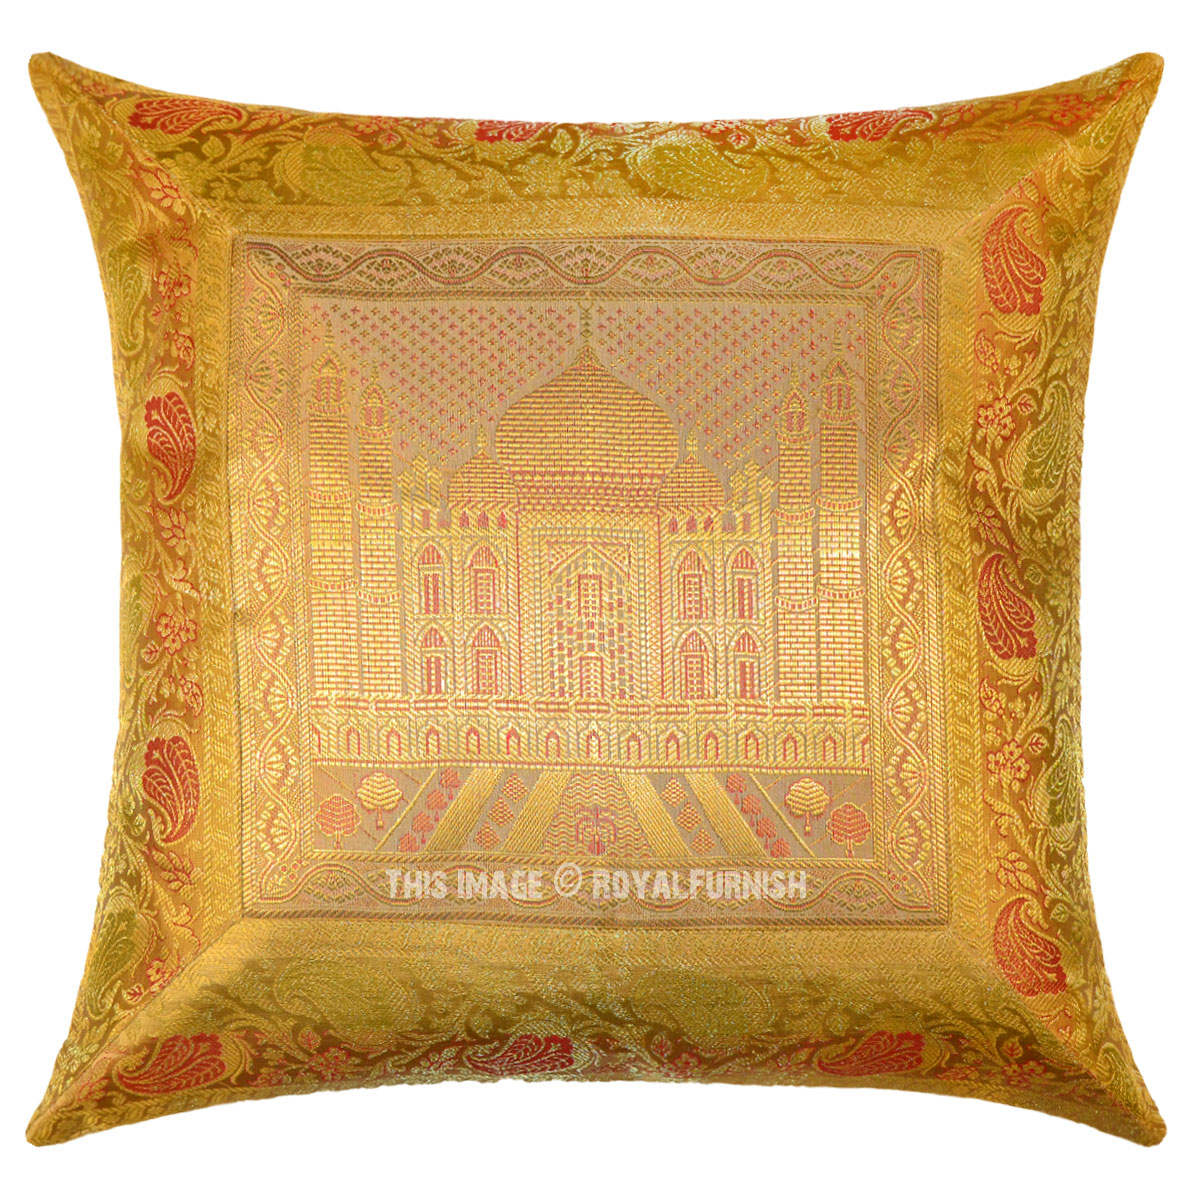 Yellow Silk Decorative Pillows : Yellow Gold Tajmahal Decorative Silk Throw Pillow Case 16X16 - RoyalFurnish.com